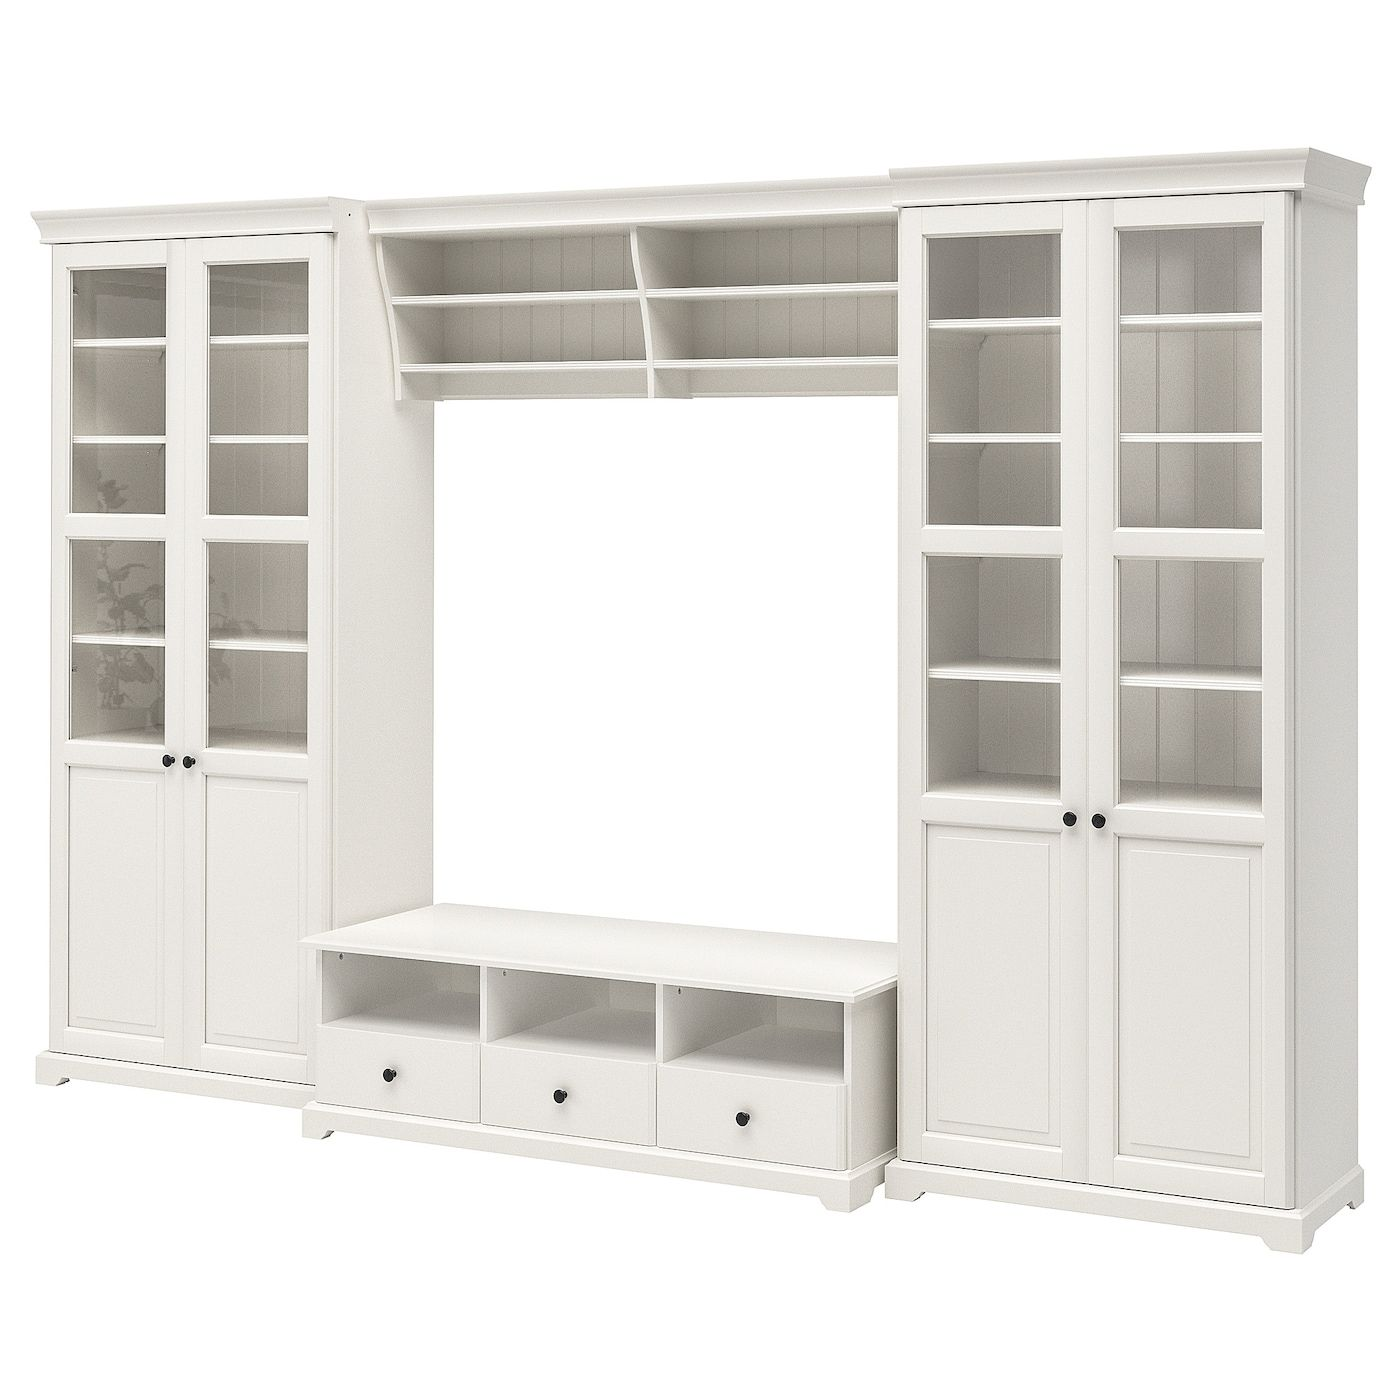 Meubles Cases Ikea Liatorp Tv Storage Combination White In 2019 Furniture Tv